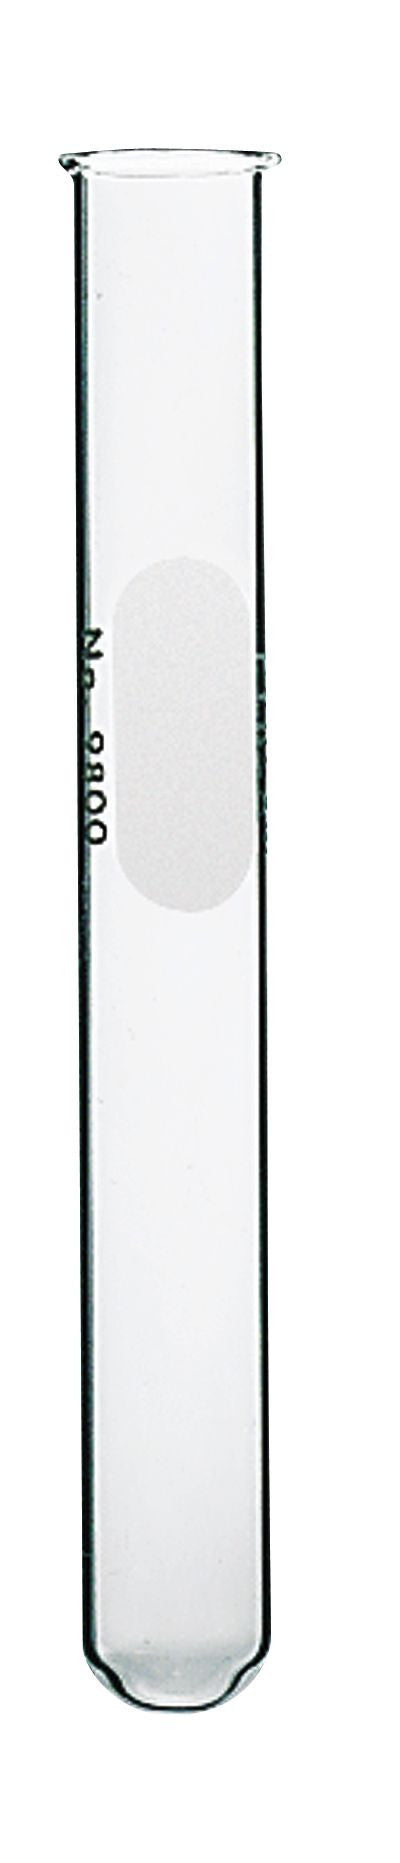 PYREX® 34mL Test Tubes, 20x150mm ~ Glass 6/pk